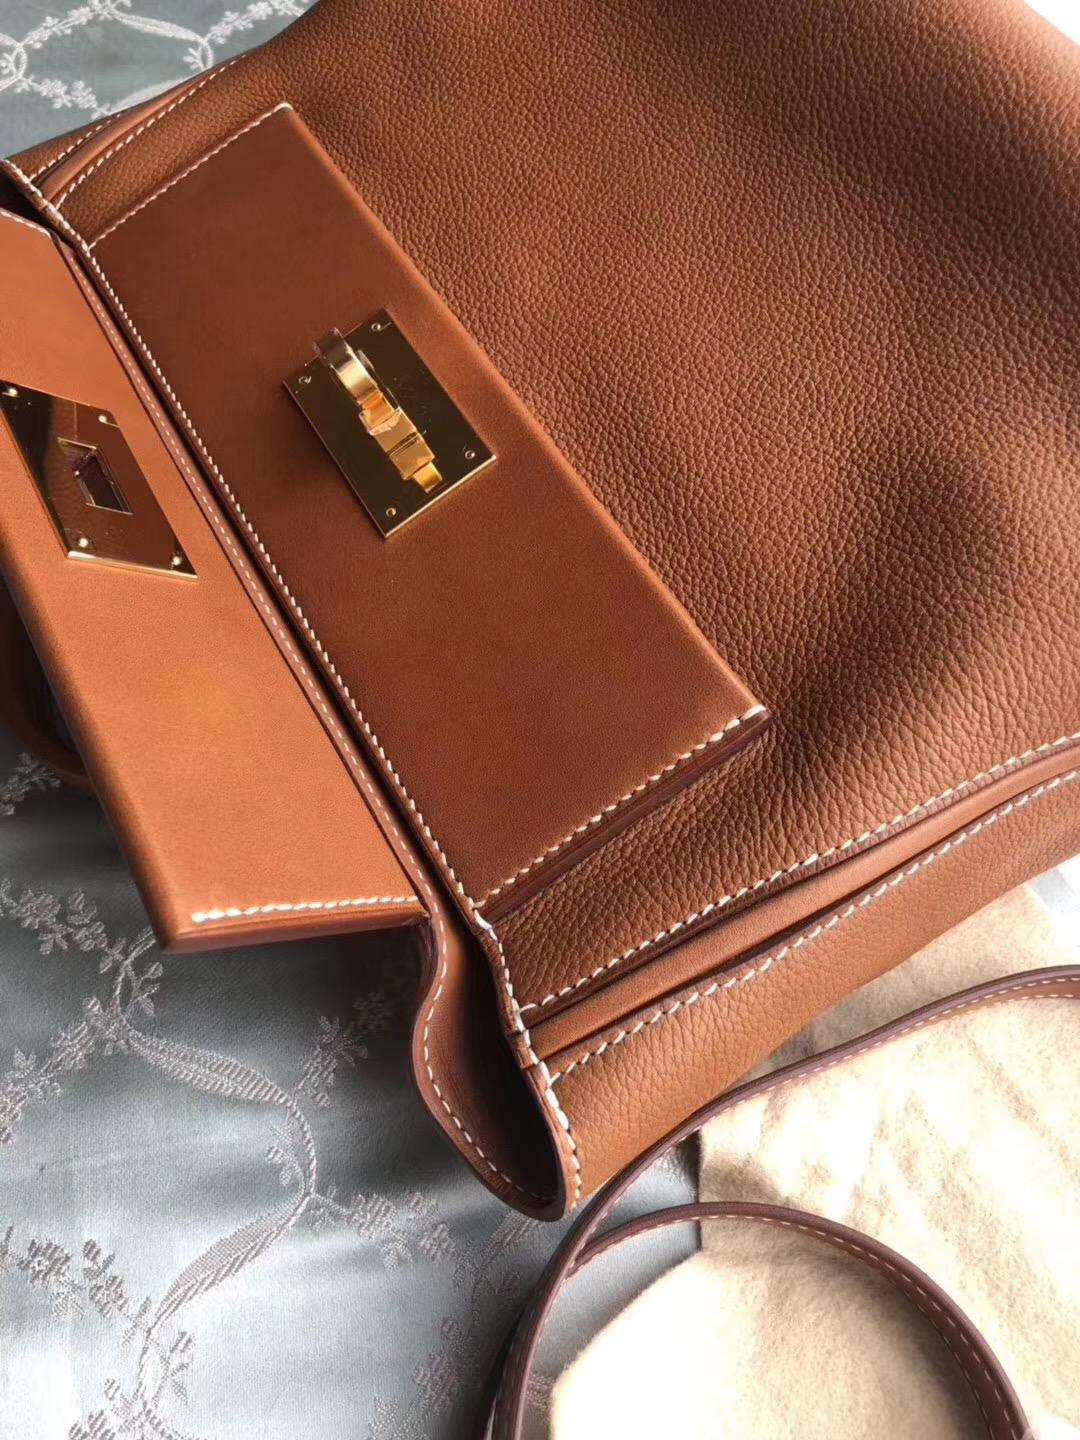 24*24 Hermes Kelly 24 24 Ck37金棕色taurillon Maurice皮拼色 Ck37金棕色